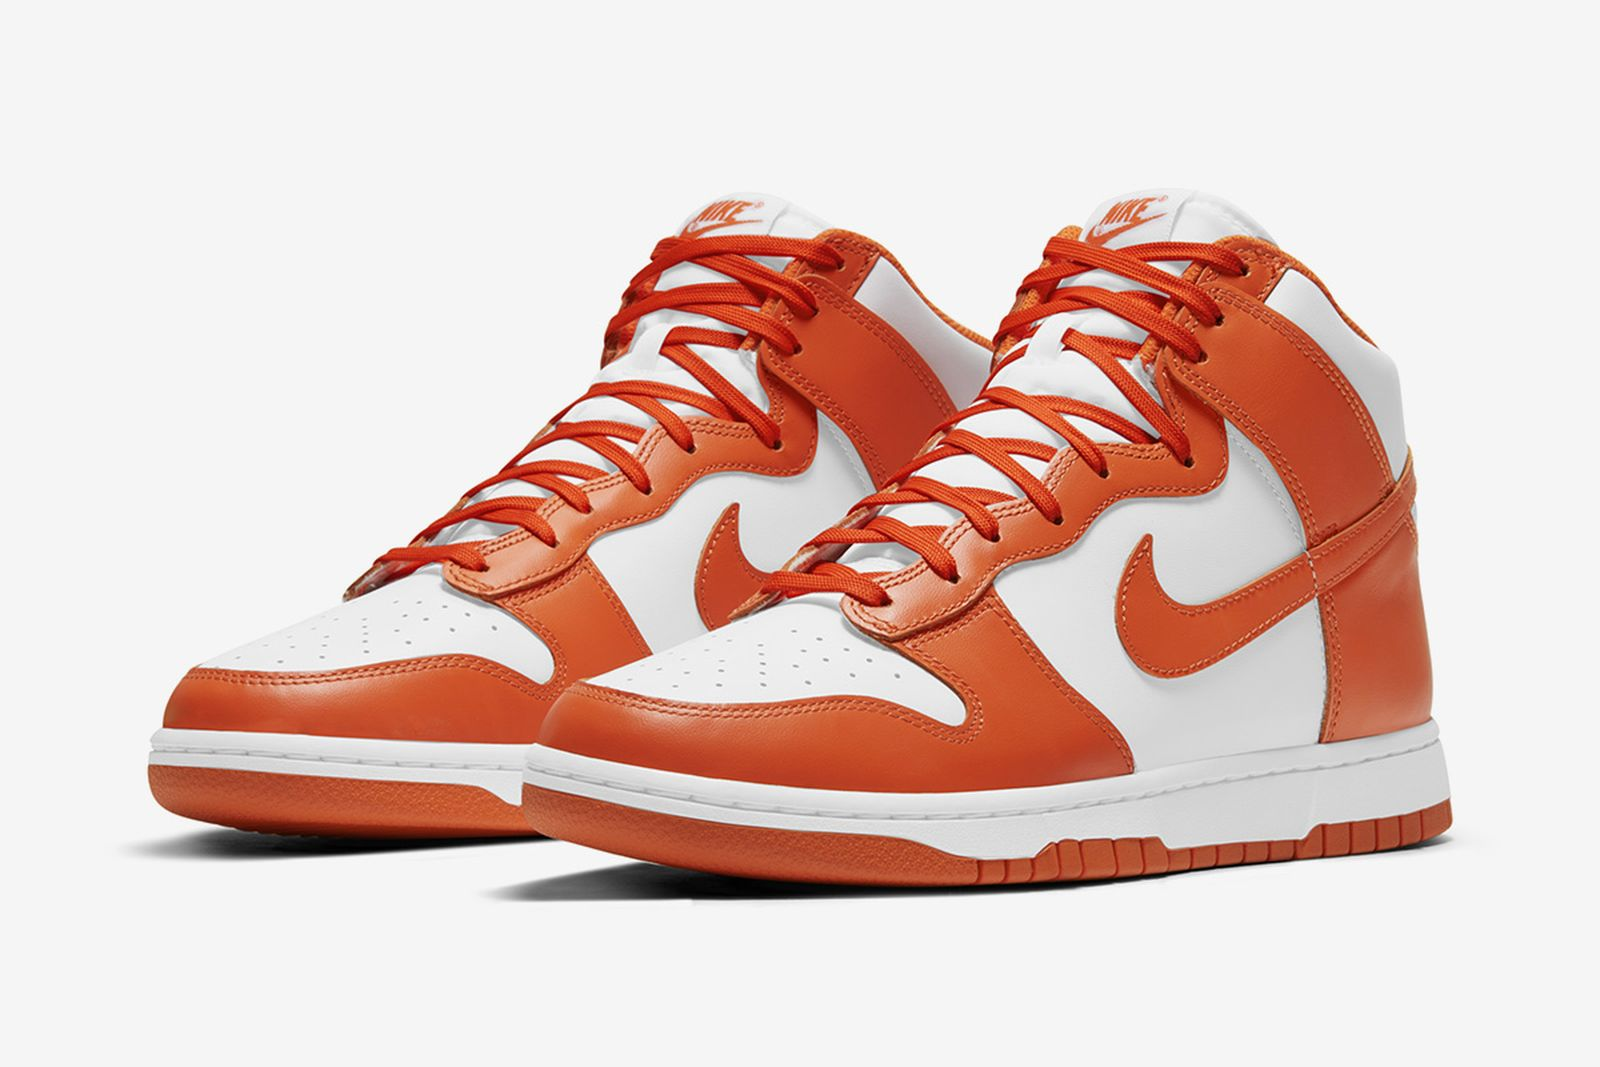 nike-dunk-spring-2021-release-date-price-1-23